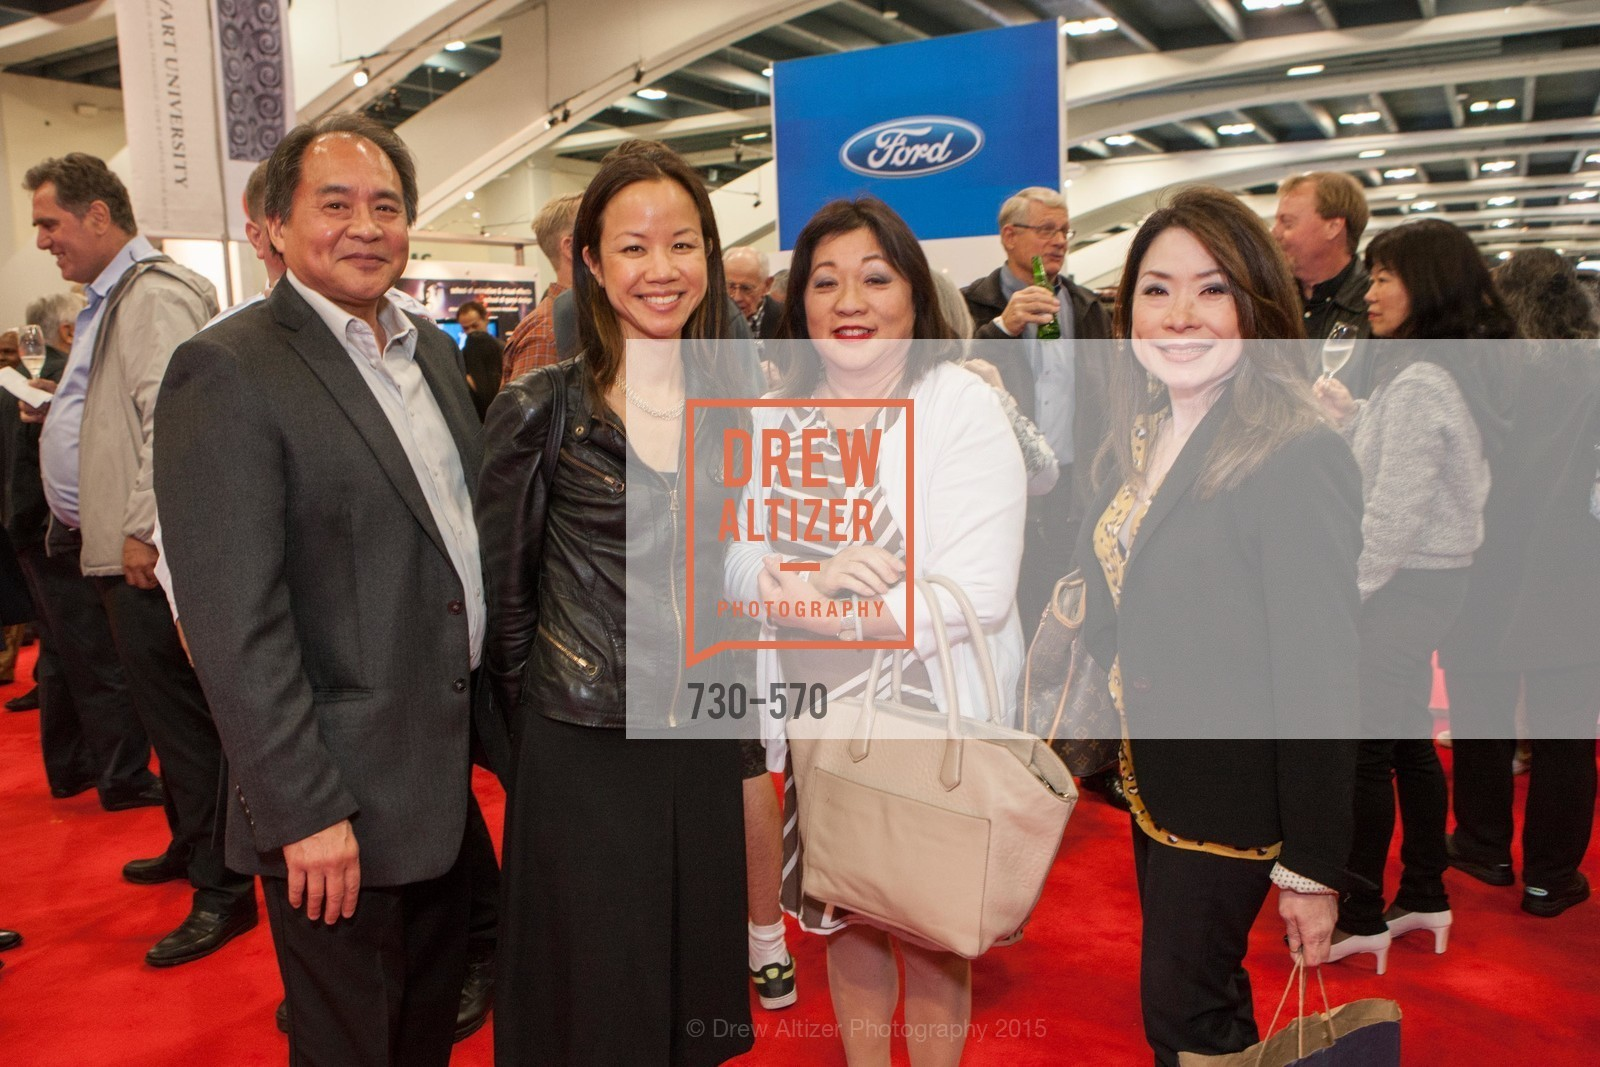 Richard Fiu, Amy Shieh, Beverly Lee, Alice Ng, Academy of Art University Reception at the 58th Annual SF International Auto Show, Moscone Convention Center. 747 Howard St, November 20th, 2015,Drew Altizer, Drew Altizer Photography, full-service agency, private events, San Francisco photographer, photographer california